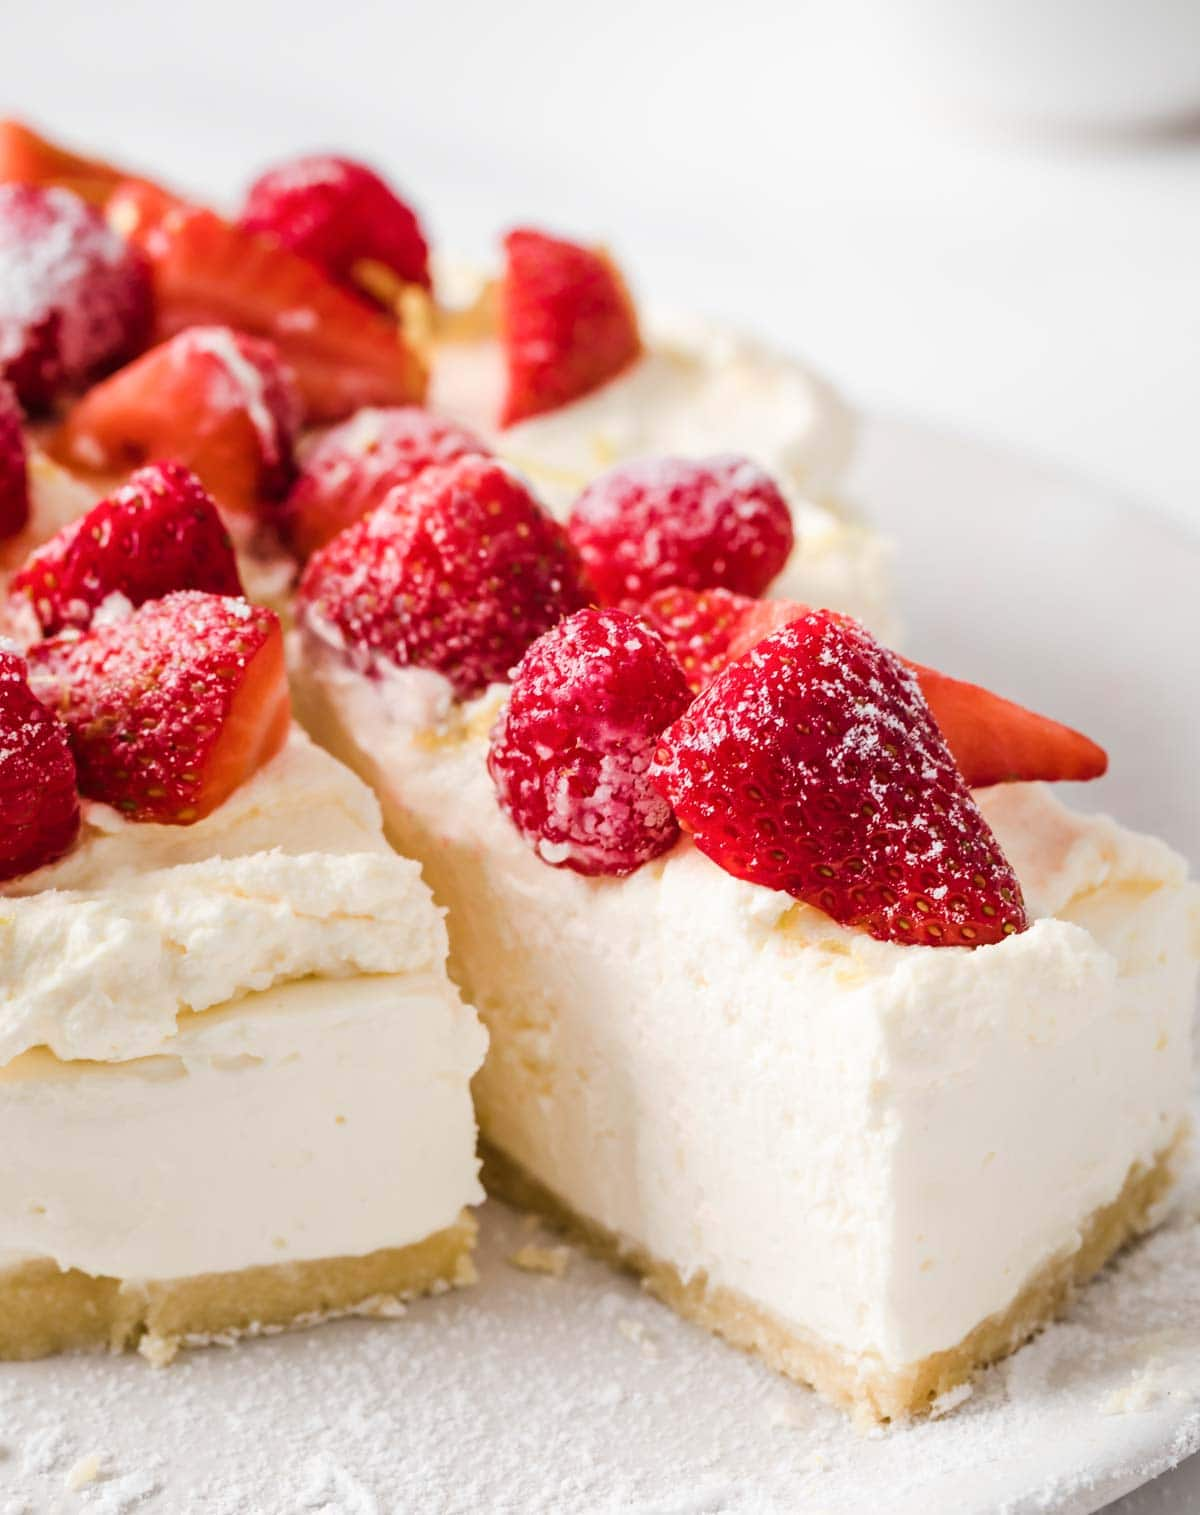 a slice of cake half removed from a sugar free cheesecake topped with strawberries and raspberries